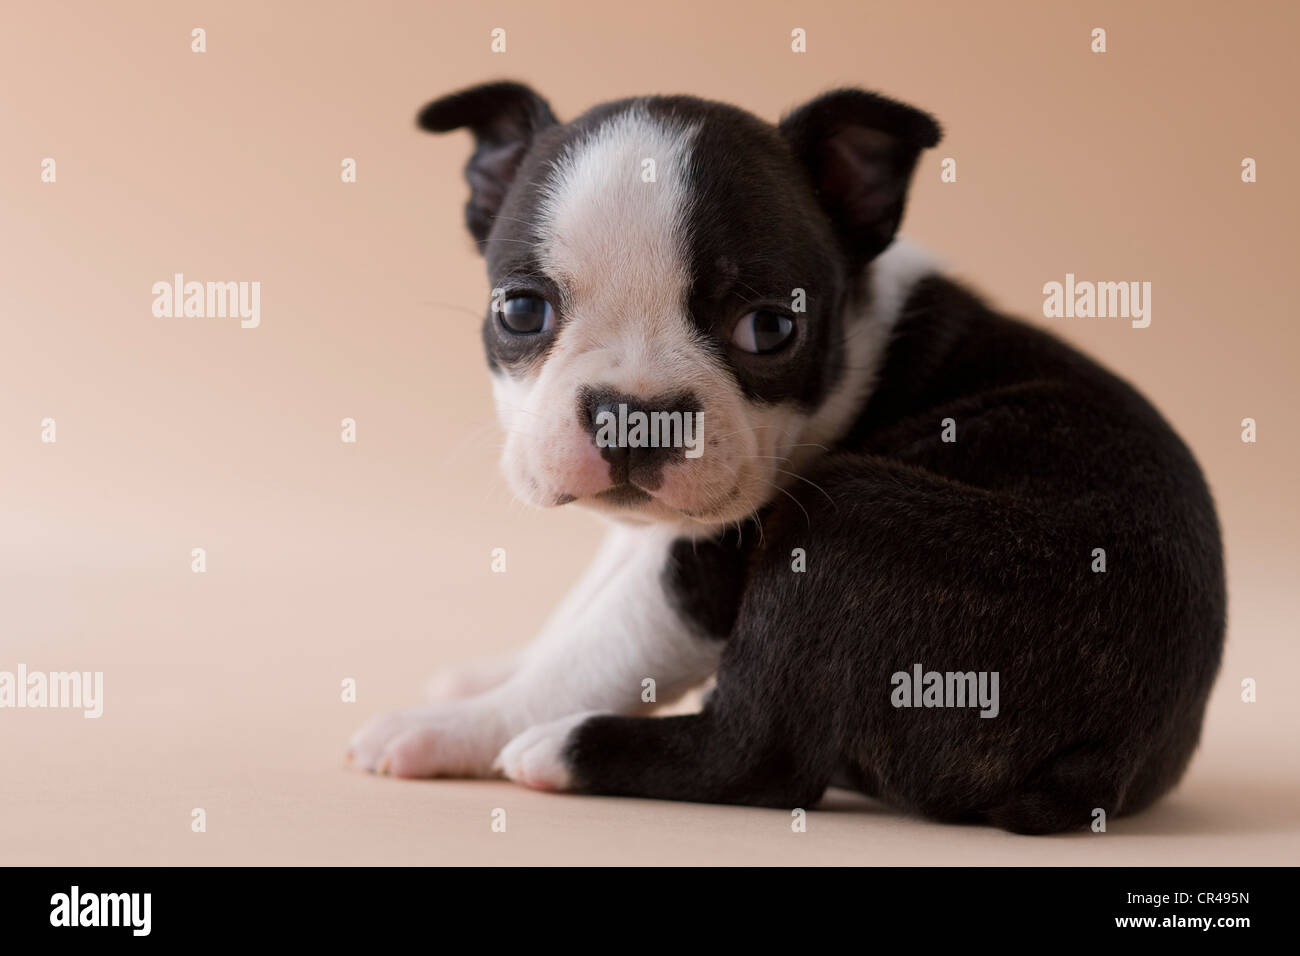 Boston Terrier Puppy - Stock Image